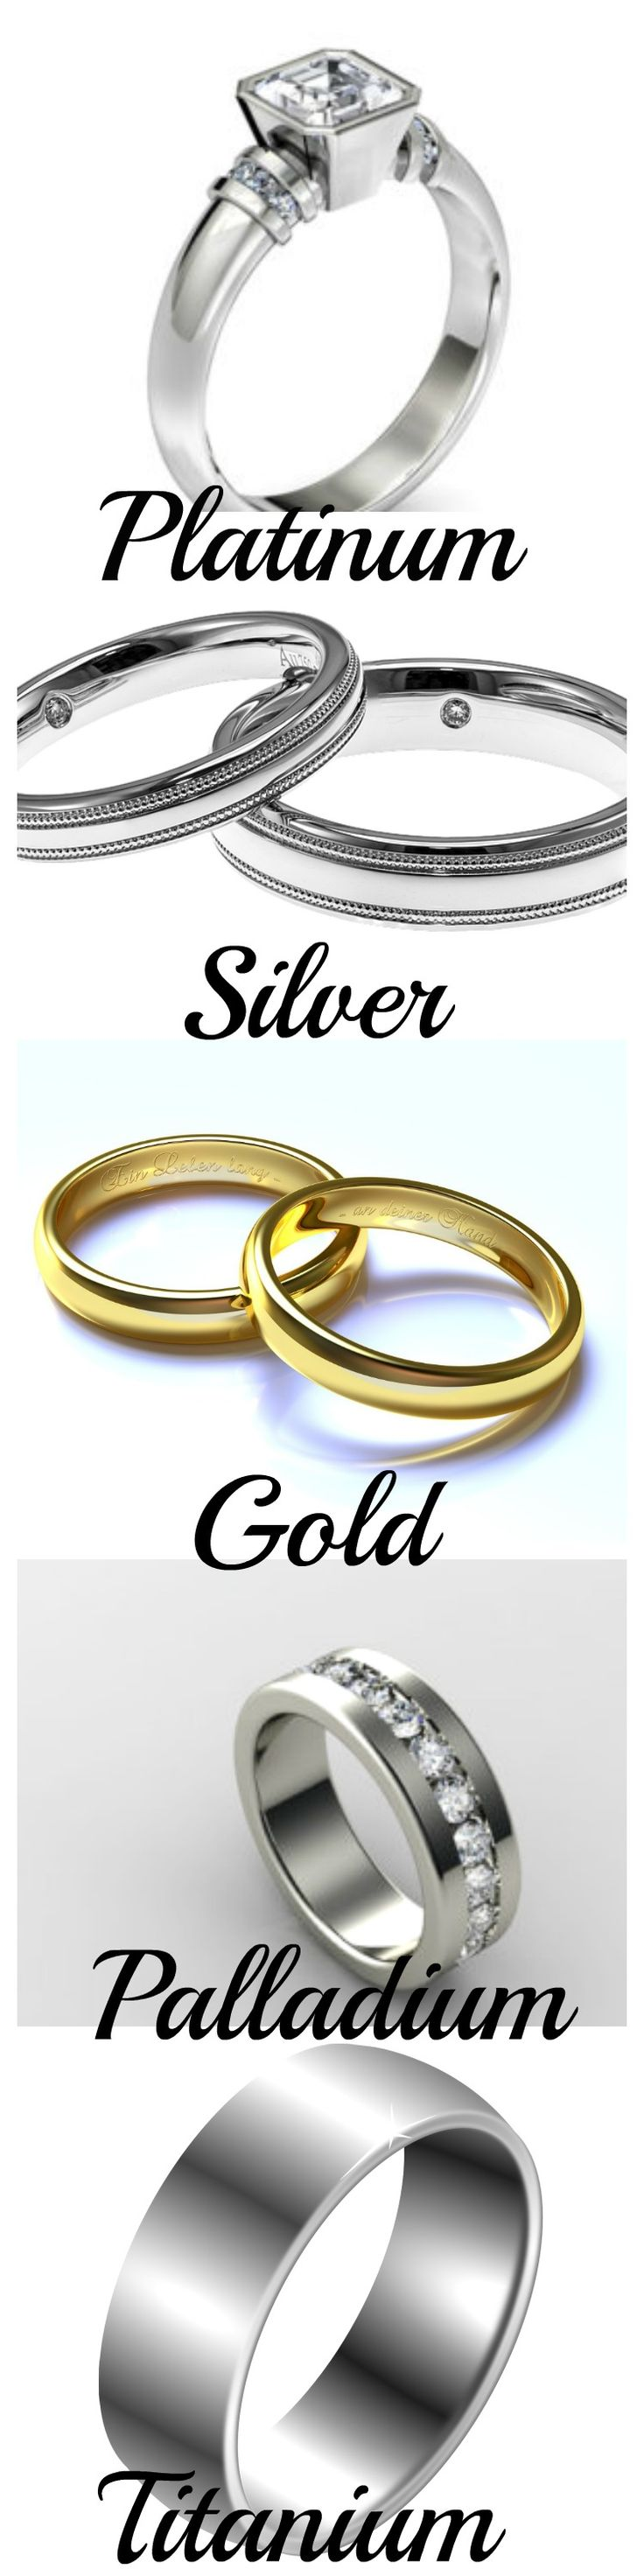 wedding ring guide deadpool wedding ring Everything you need to know Before Buying a Wedding Ring